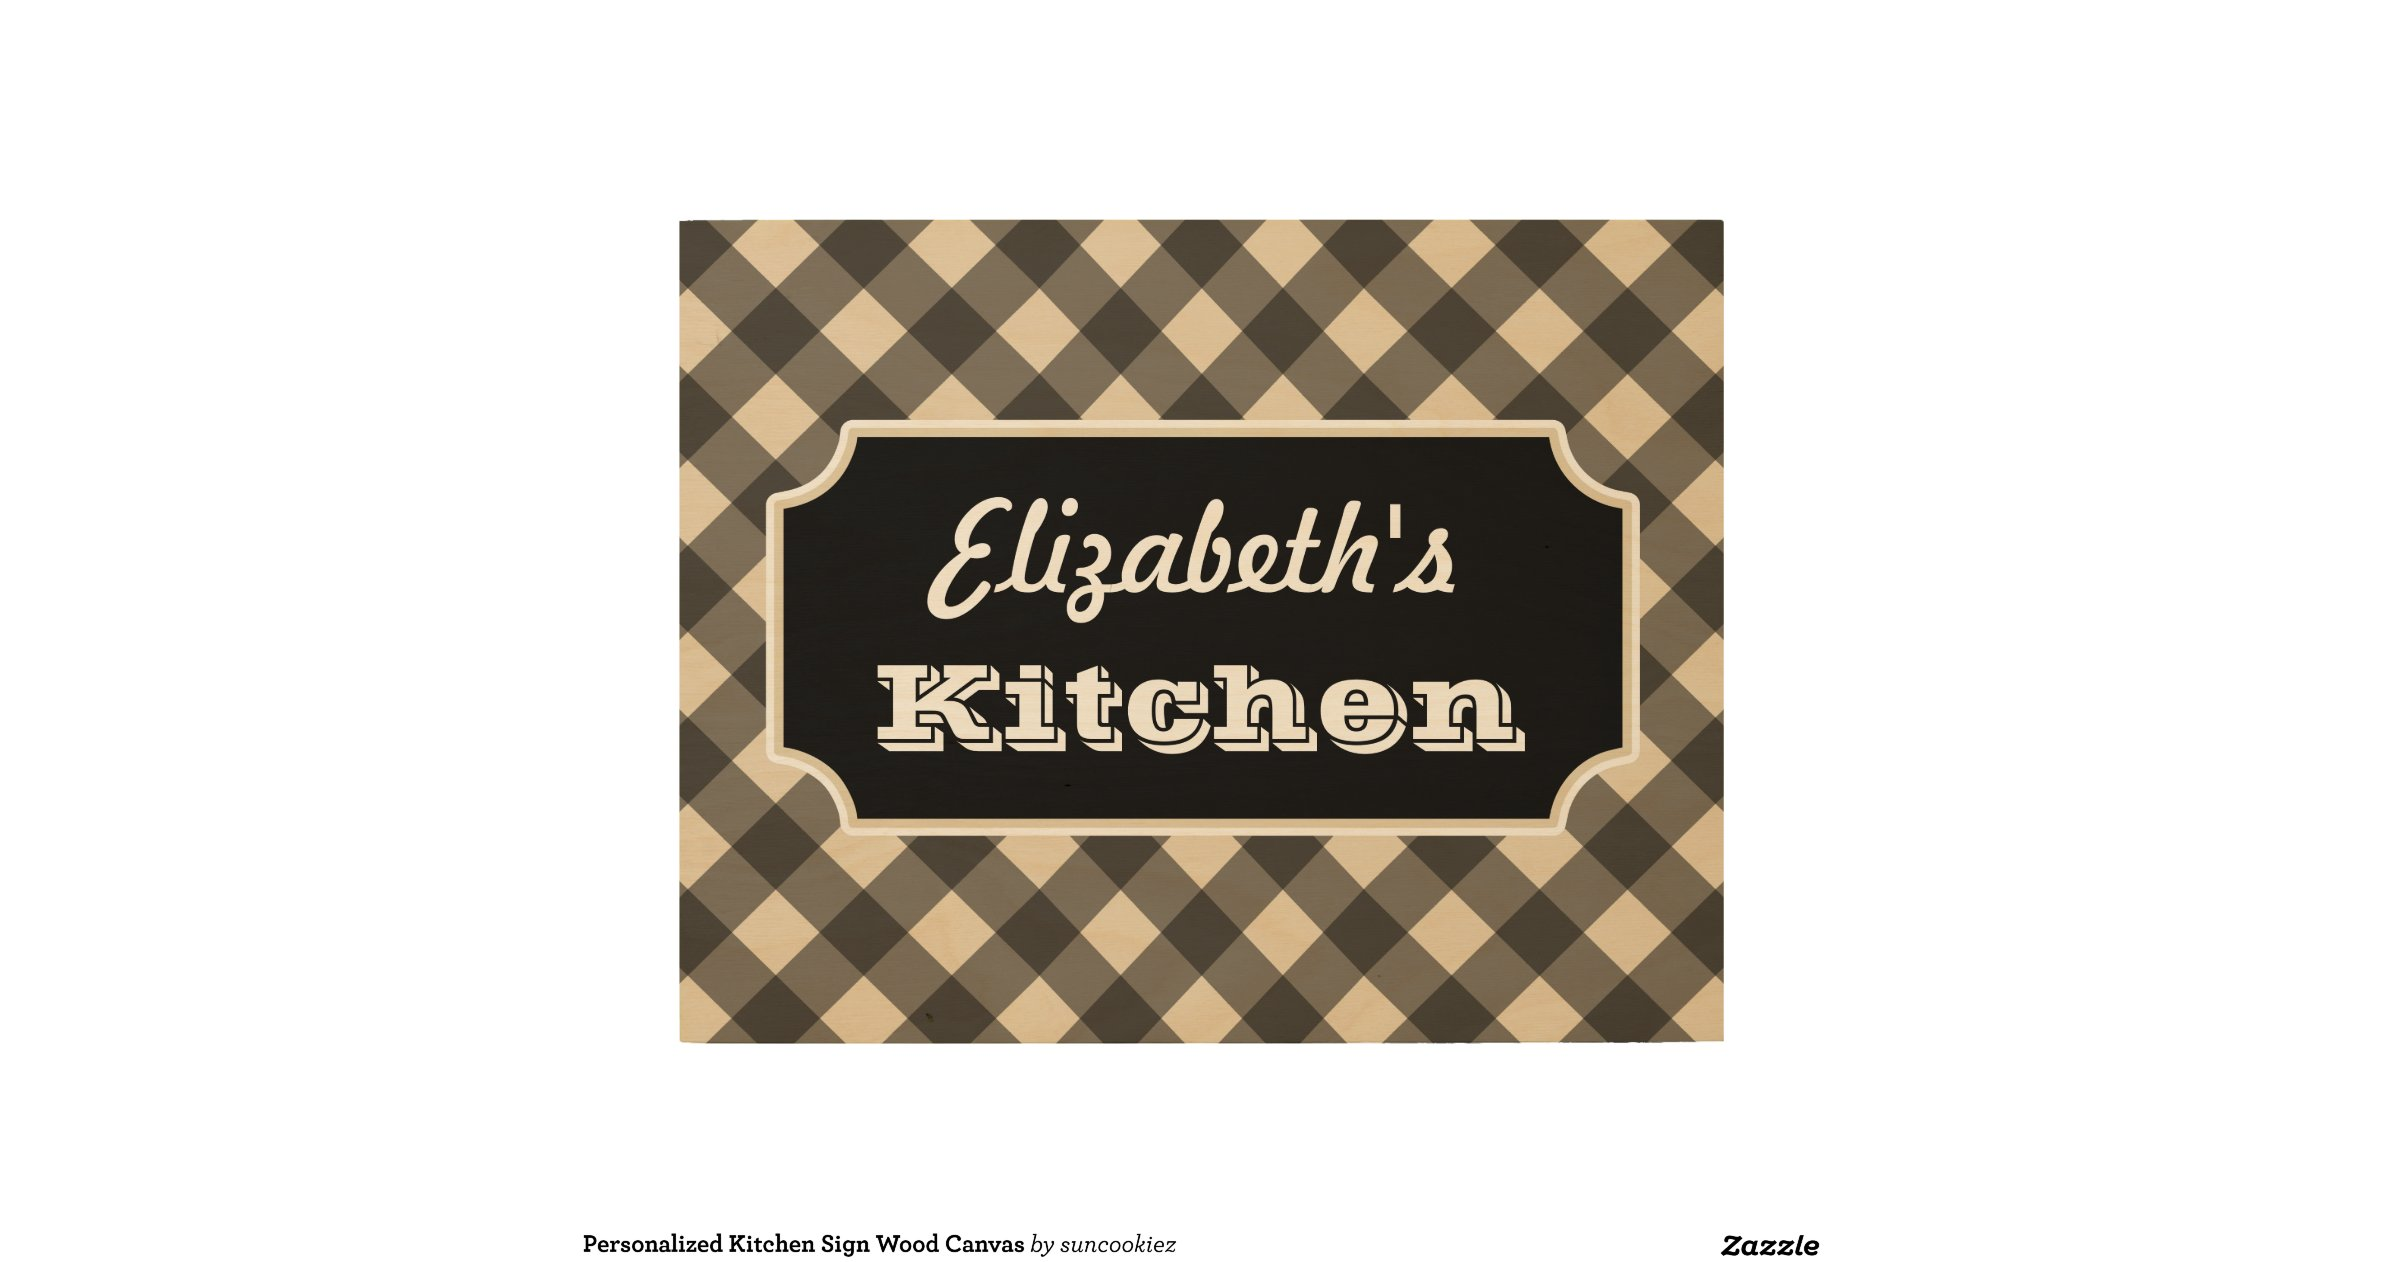 Personalized Kitchen Sign Wood Canvas Wood Wall Art R66627183e9f141f495396418cb53635d Zfolg 1200